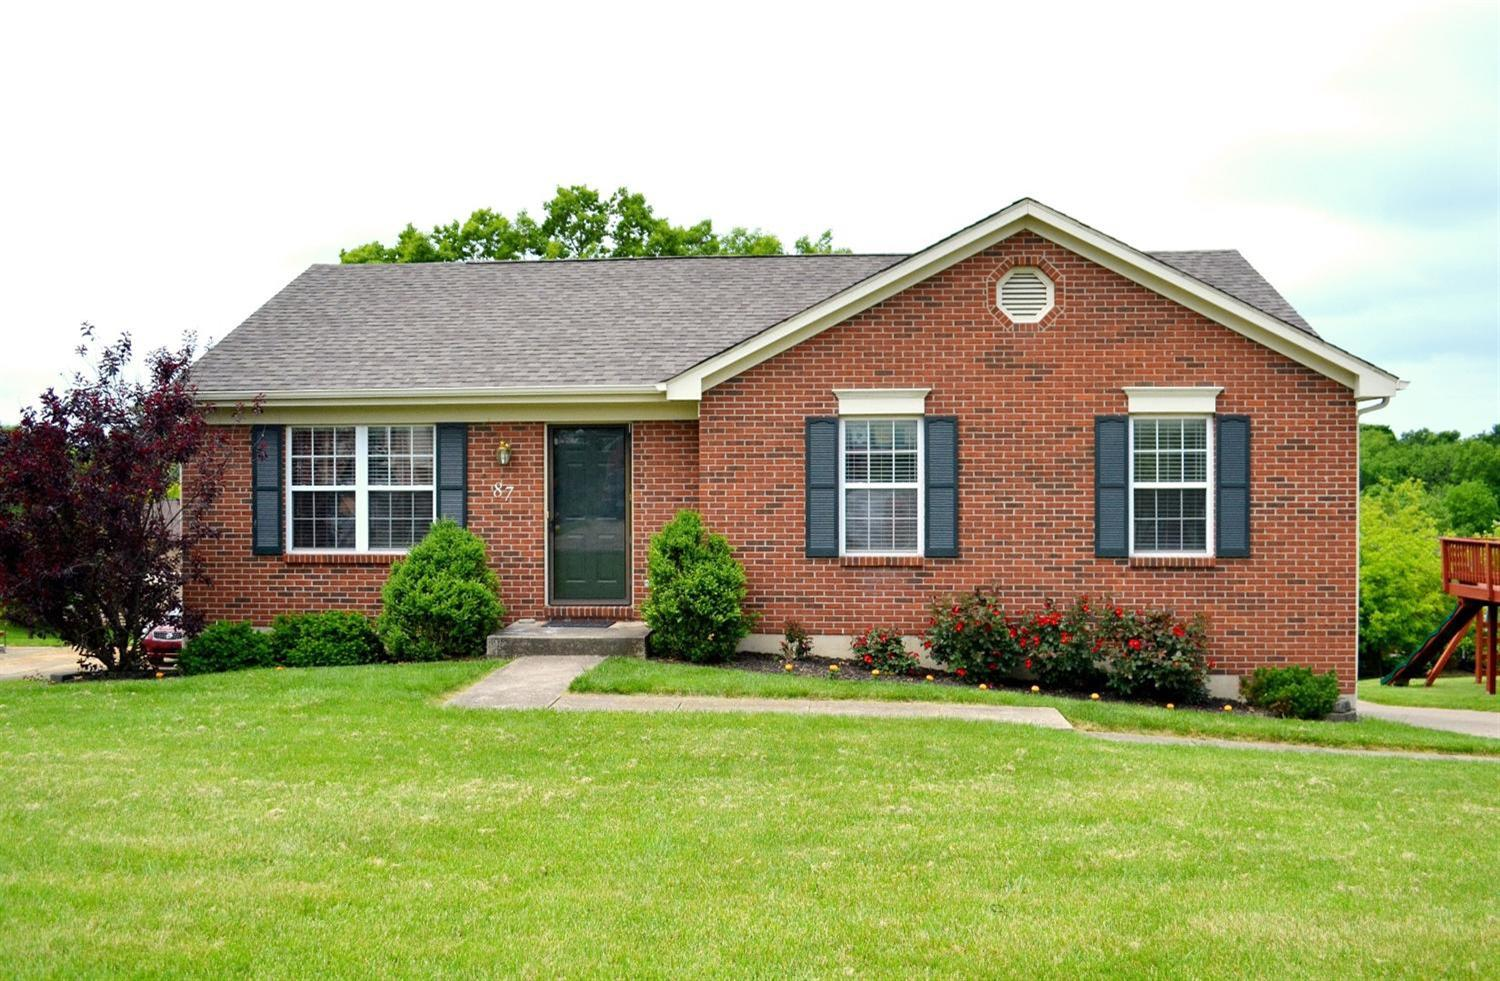 87 Carrie Way Dr, Independence, KY 41051